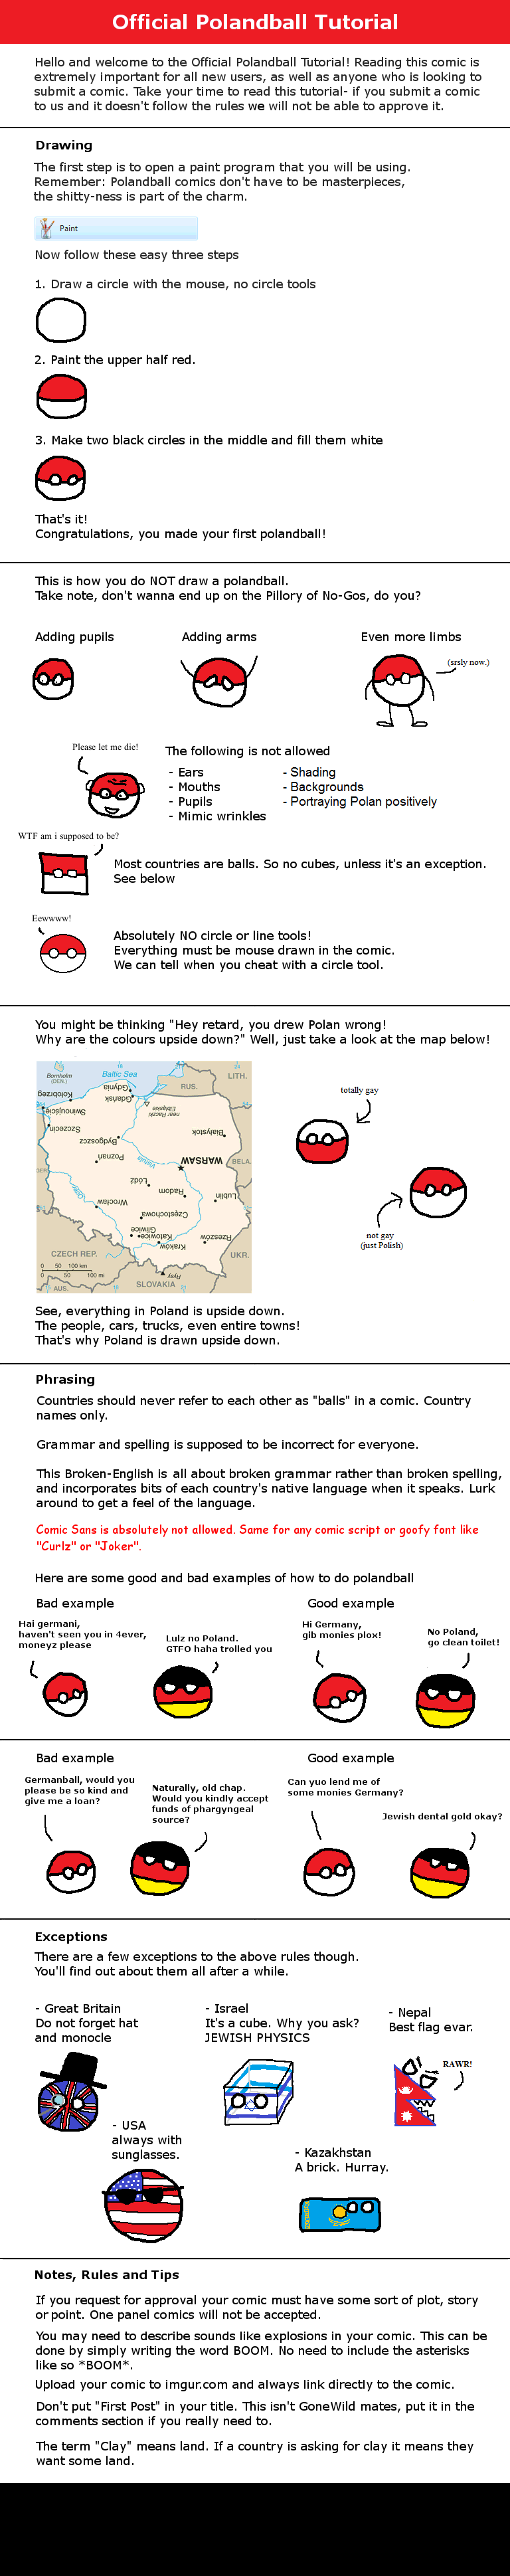 Polandball Reddit Official Tutorial Polandball Wiki Fandom